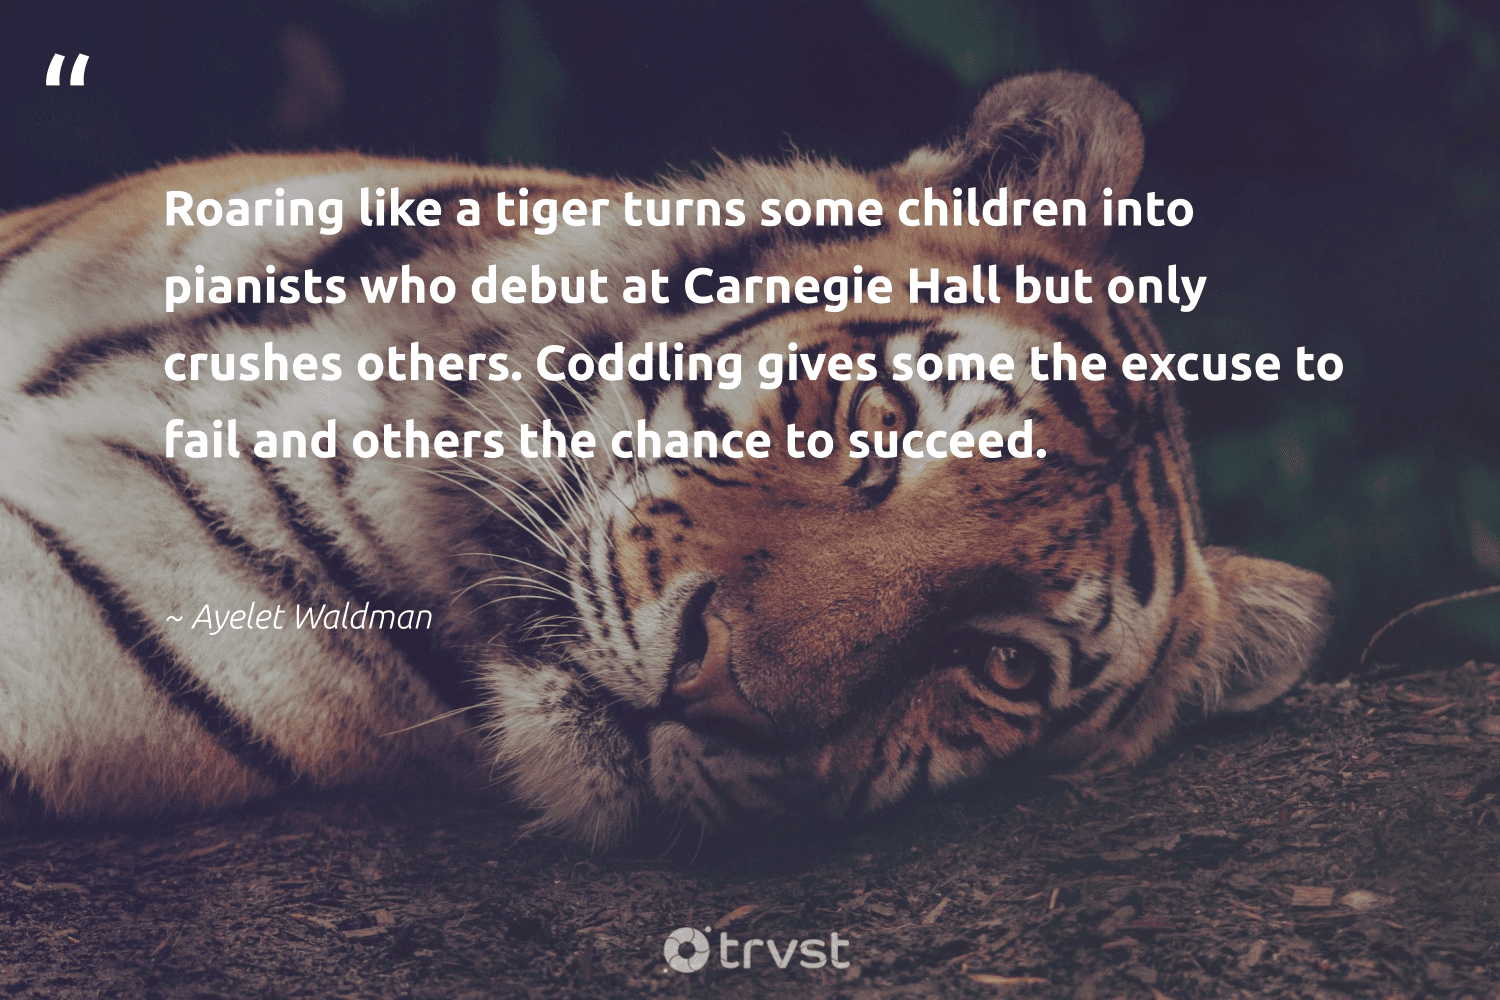 """""""Roaring like a tiger turns some children into pianists who debut at Carnegie Hall but only crushes others. Coddling gives some the excuse to fail and others the chance to succeed.""""  - Ayelet Waldman #trvst #quotes #tiger #children #biodiversity #dogood #wildlifeprotection #bethechange #ourplanetdaily #gogreen #tigers #beinspired"""